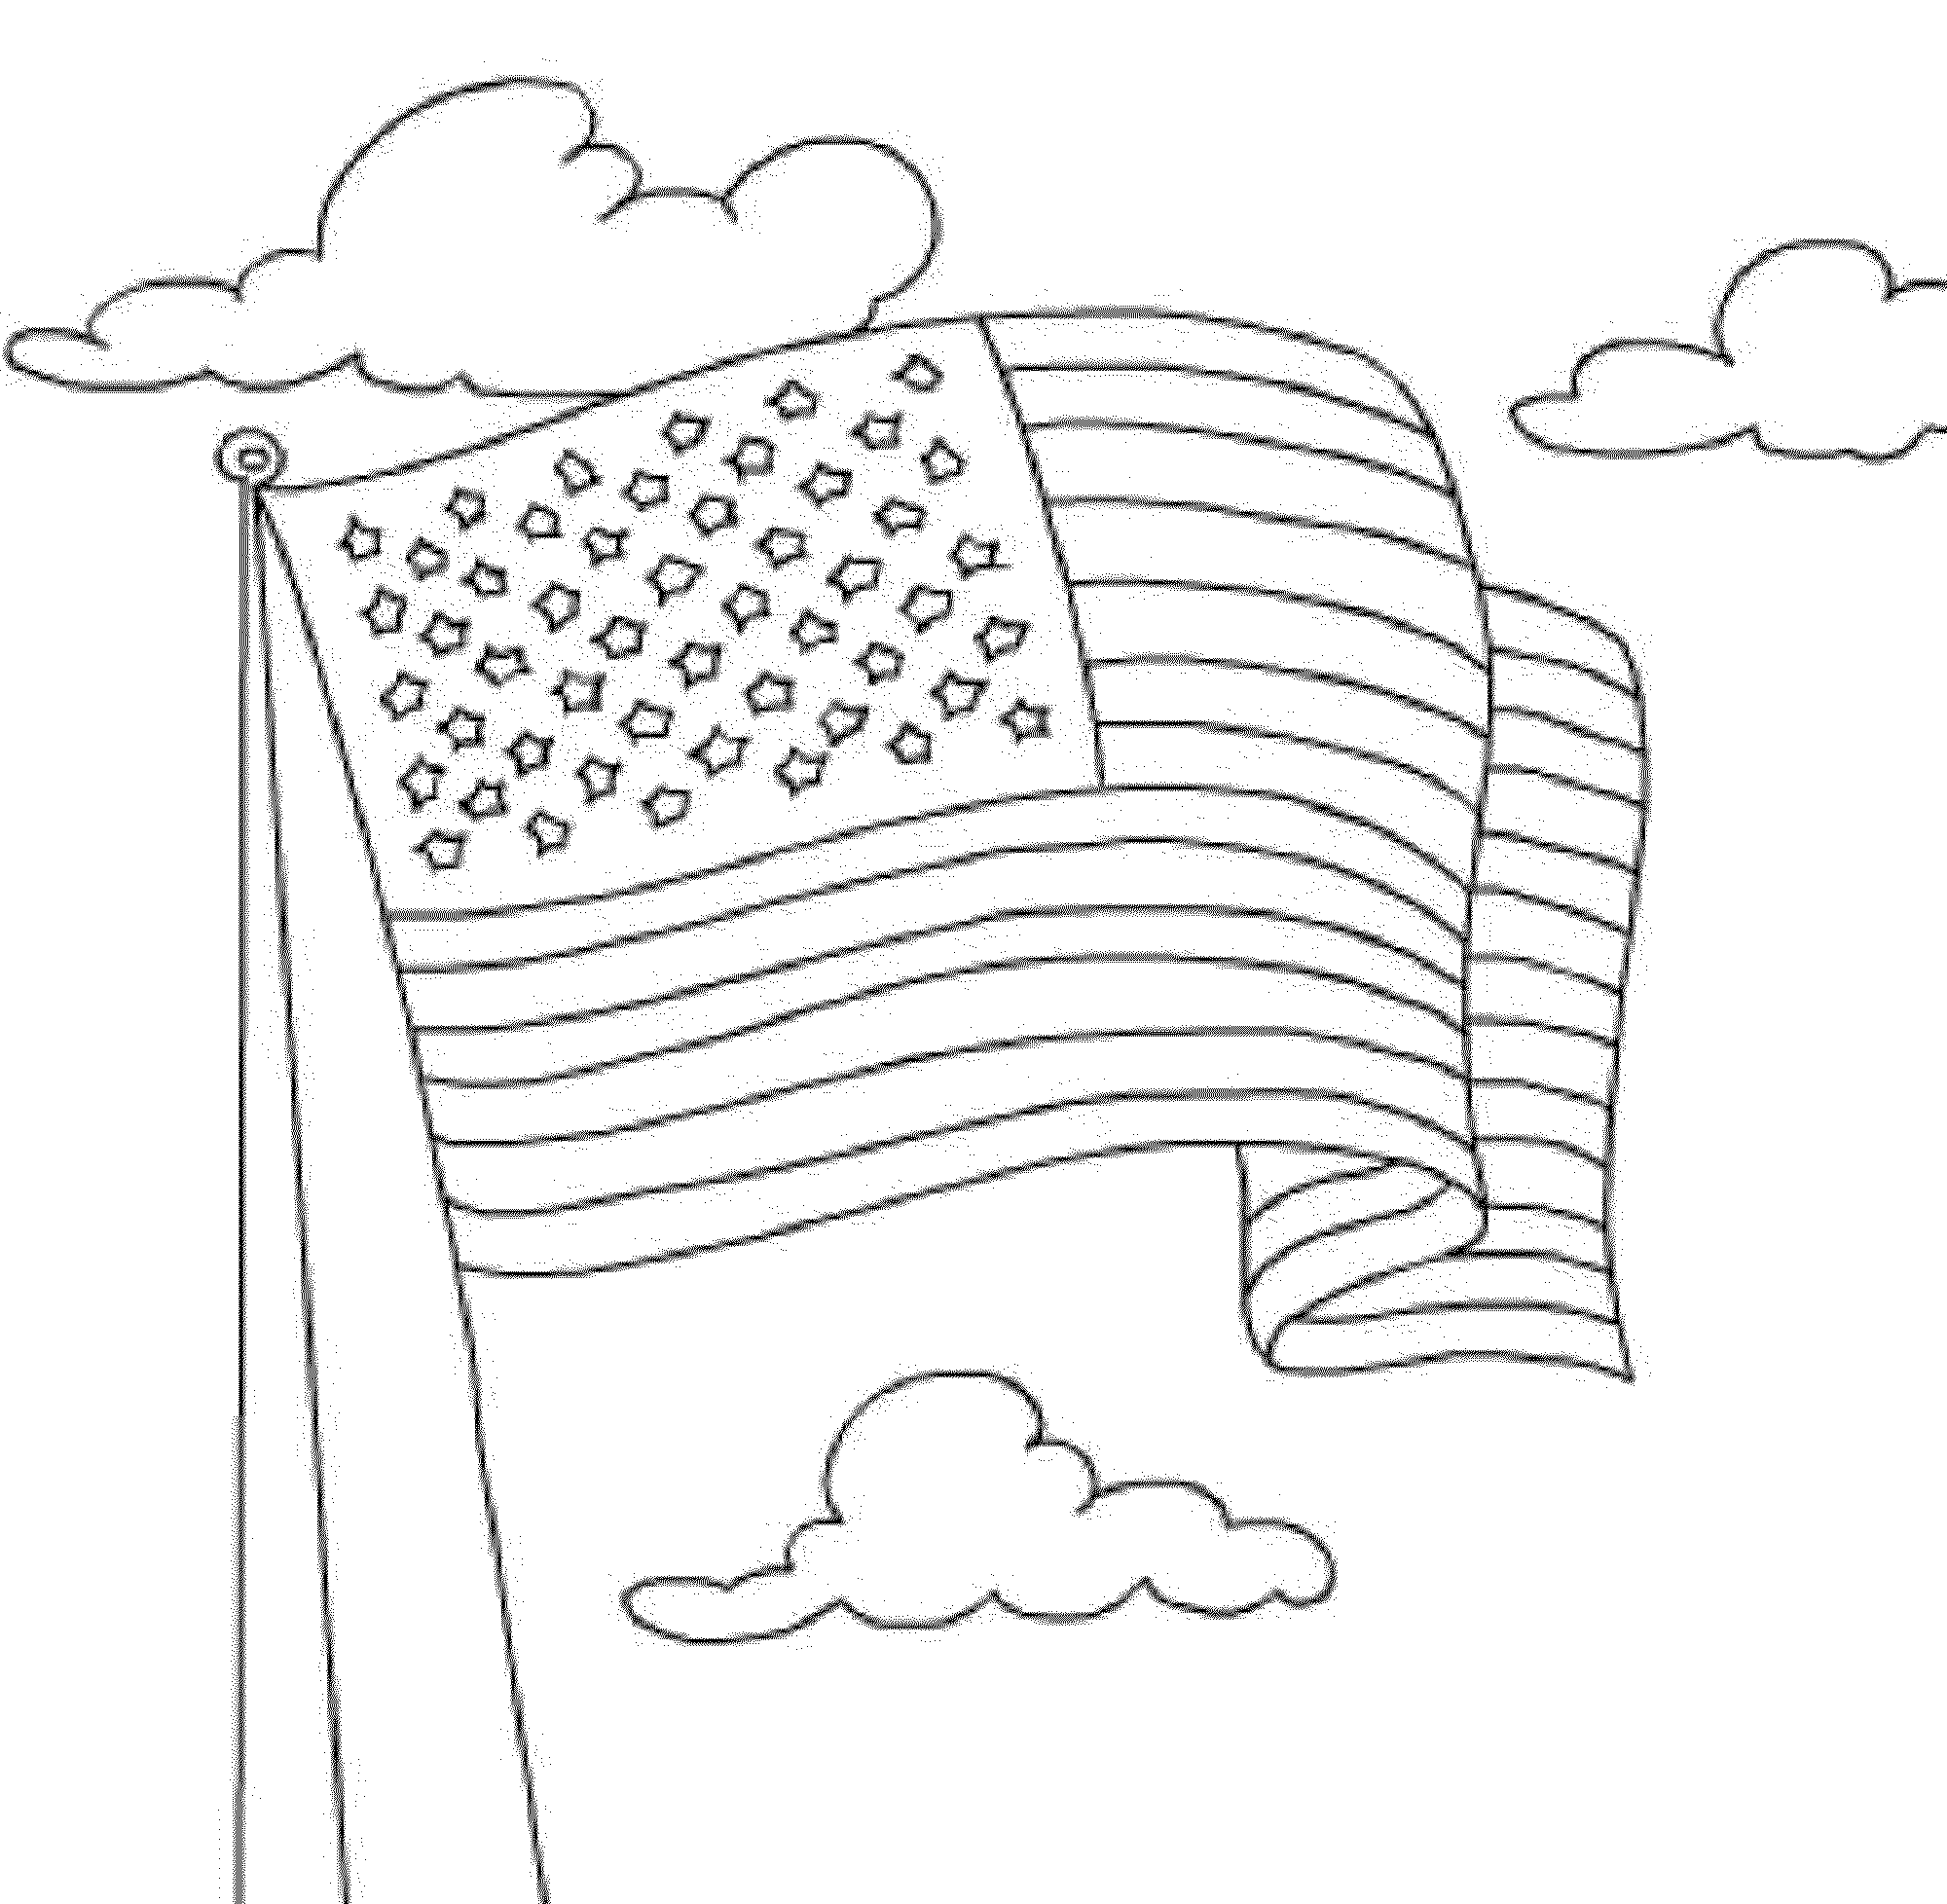 us flag coloring page free coloring american flags to print page coloring us flag